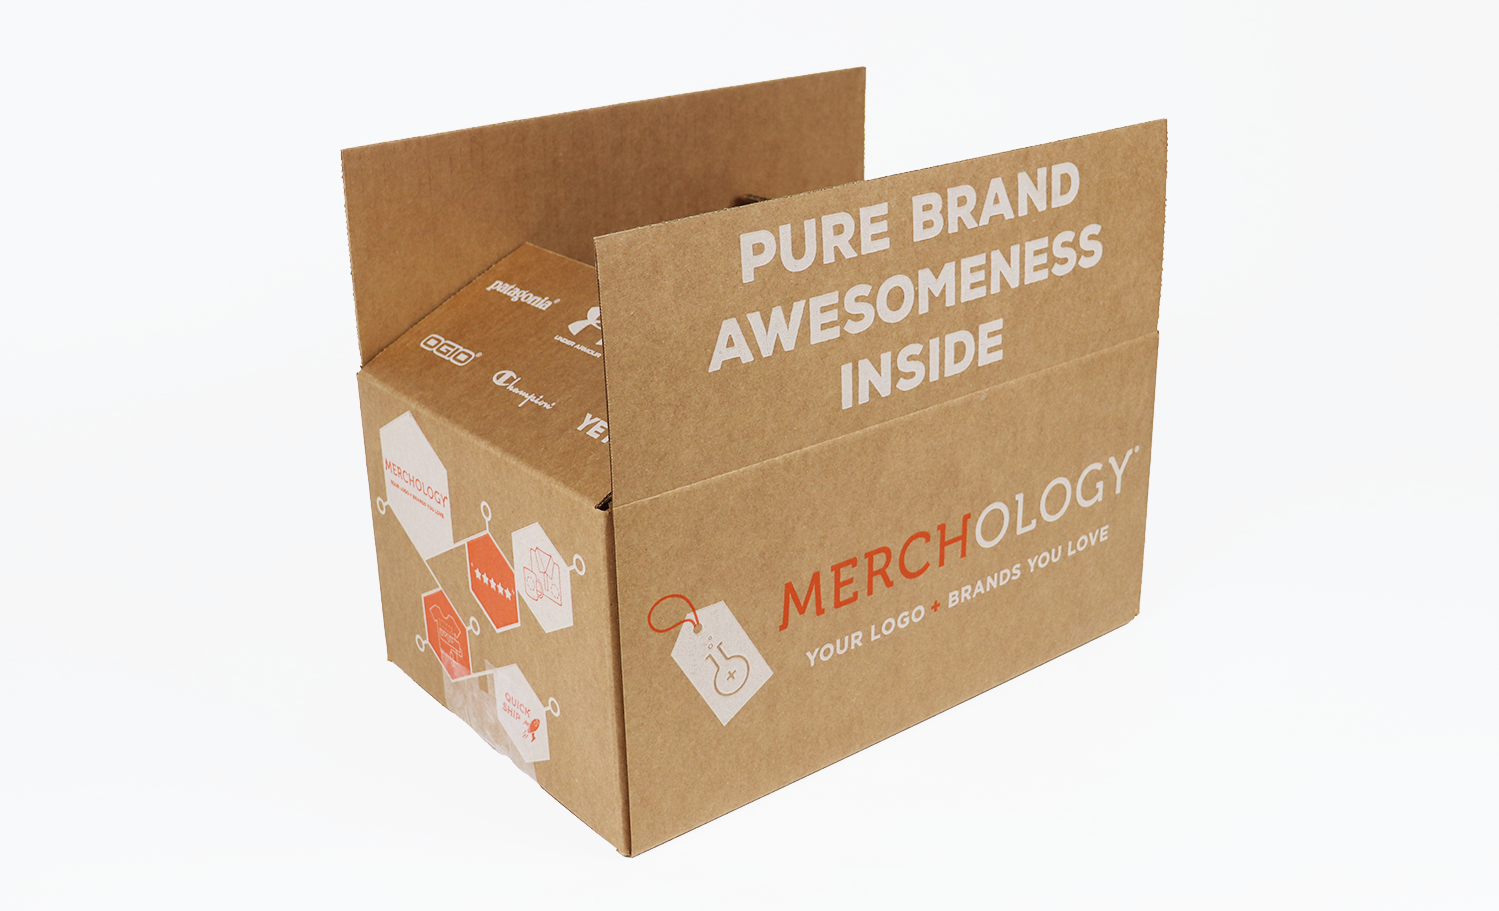 Mercholgy Custom Shipping Box 02